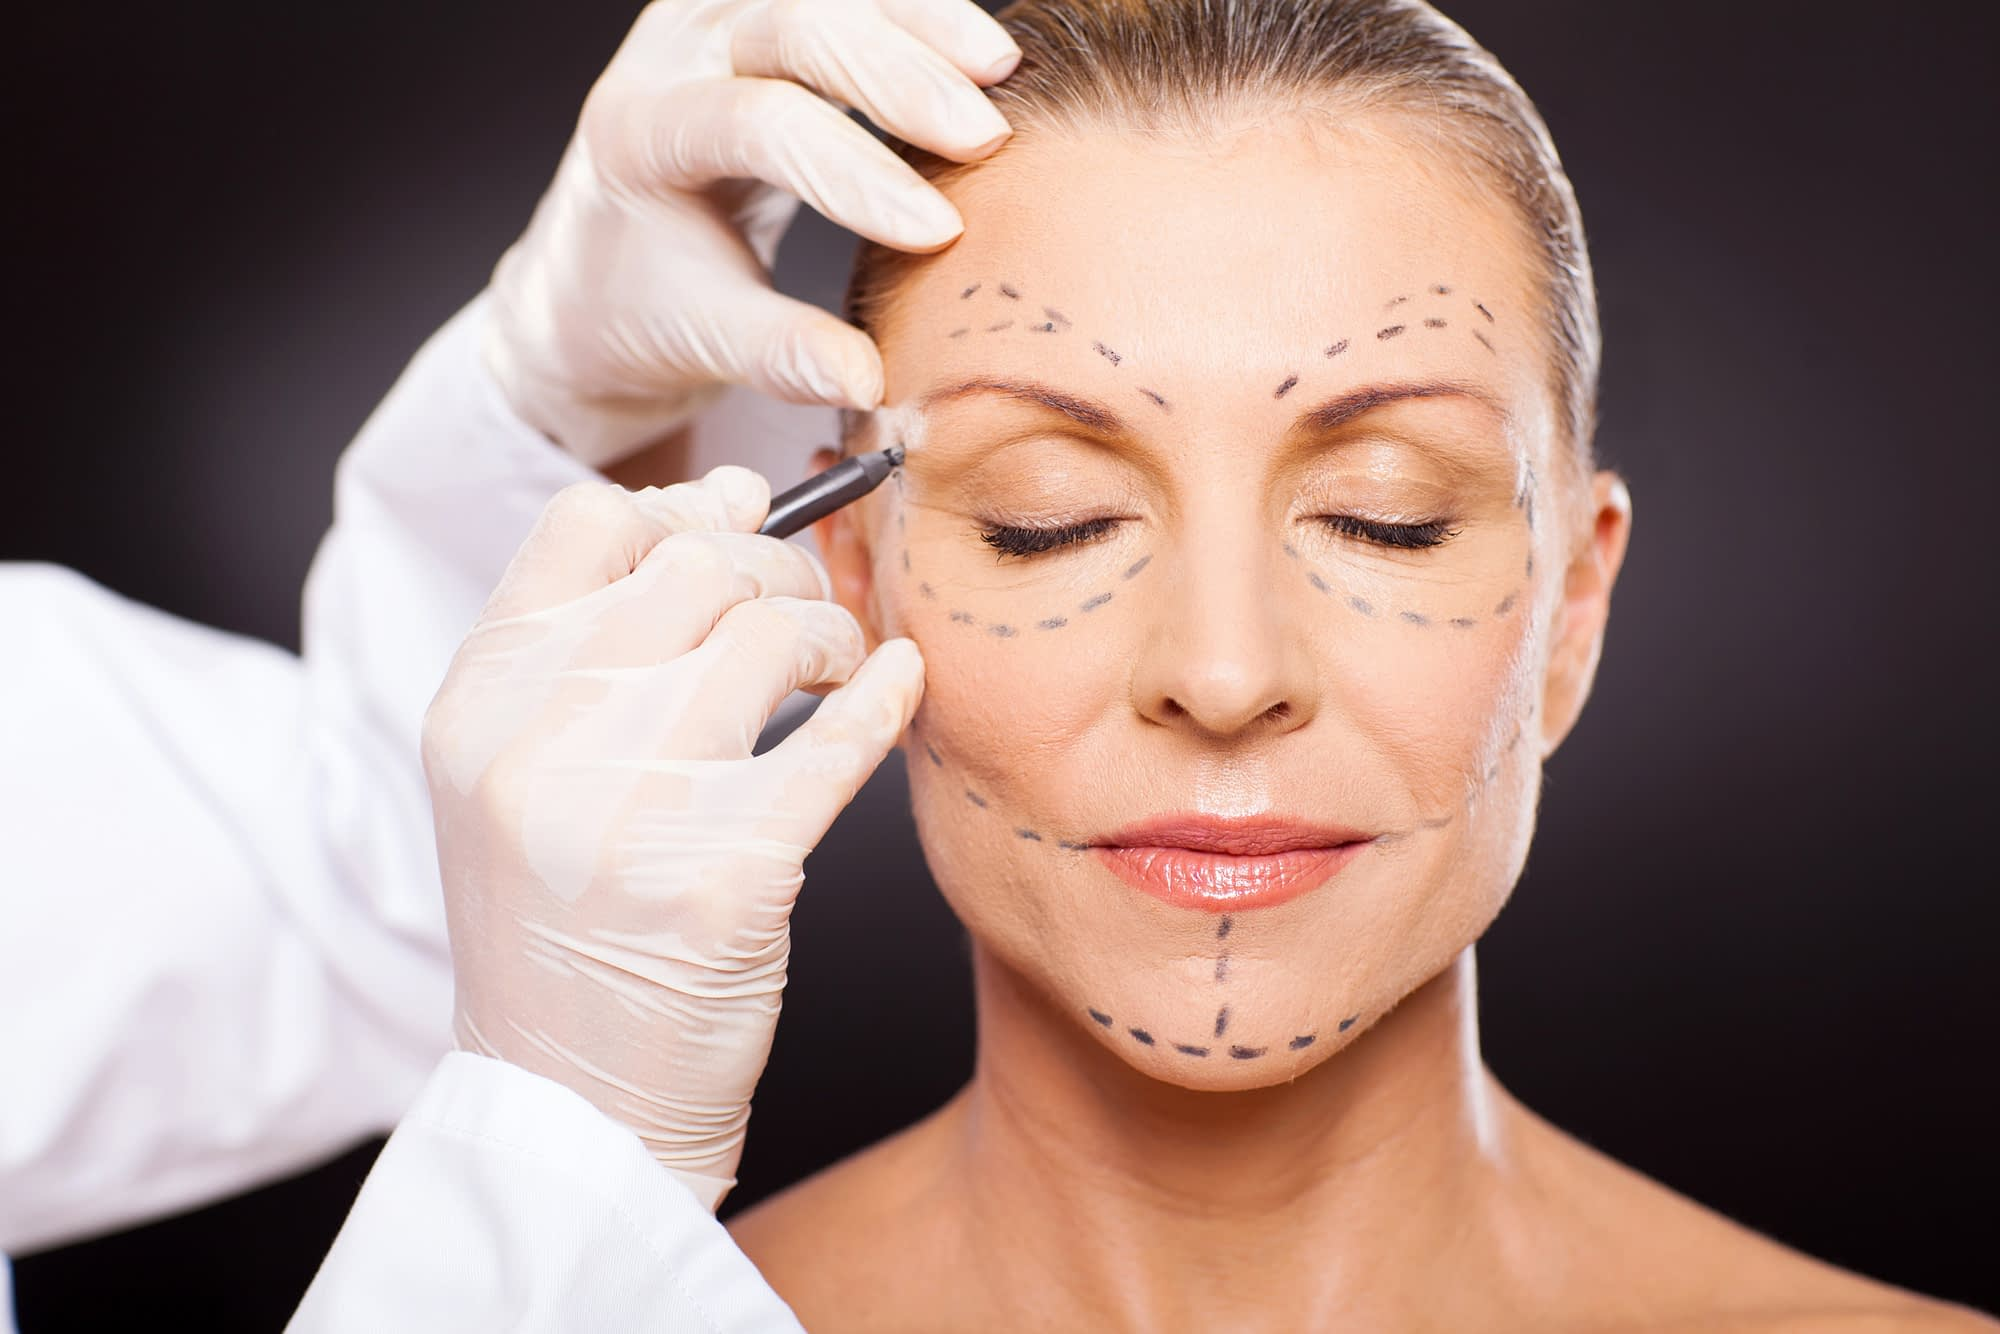 plastic surgery to look younger